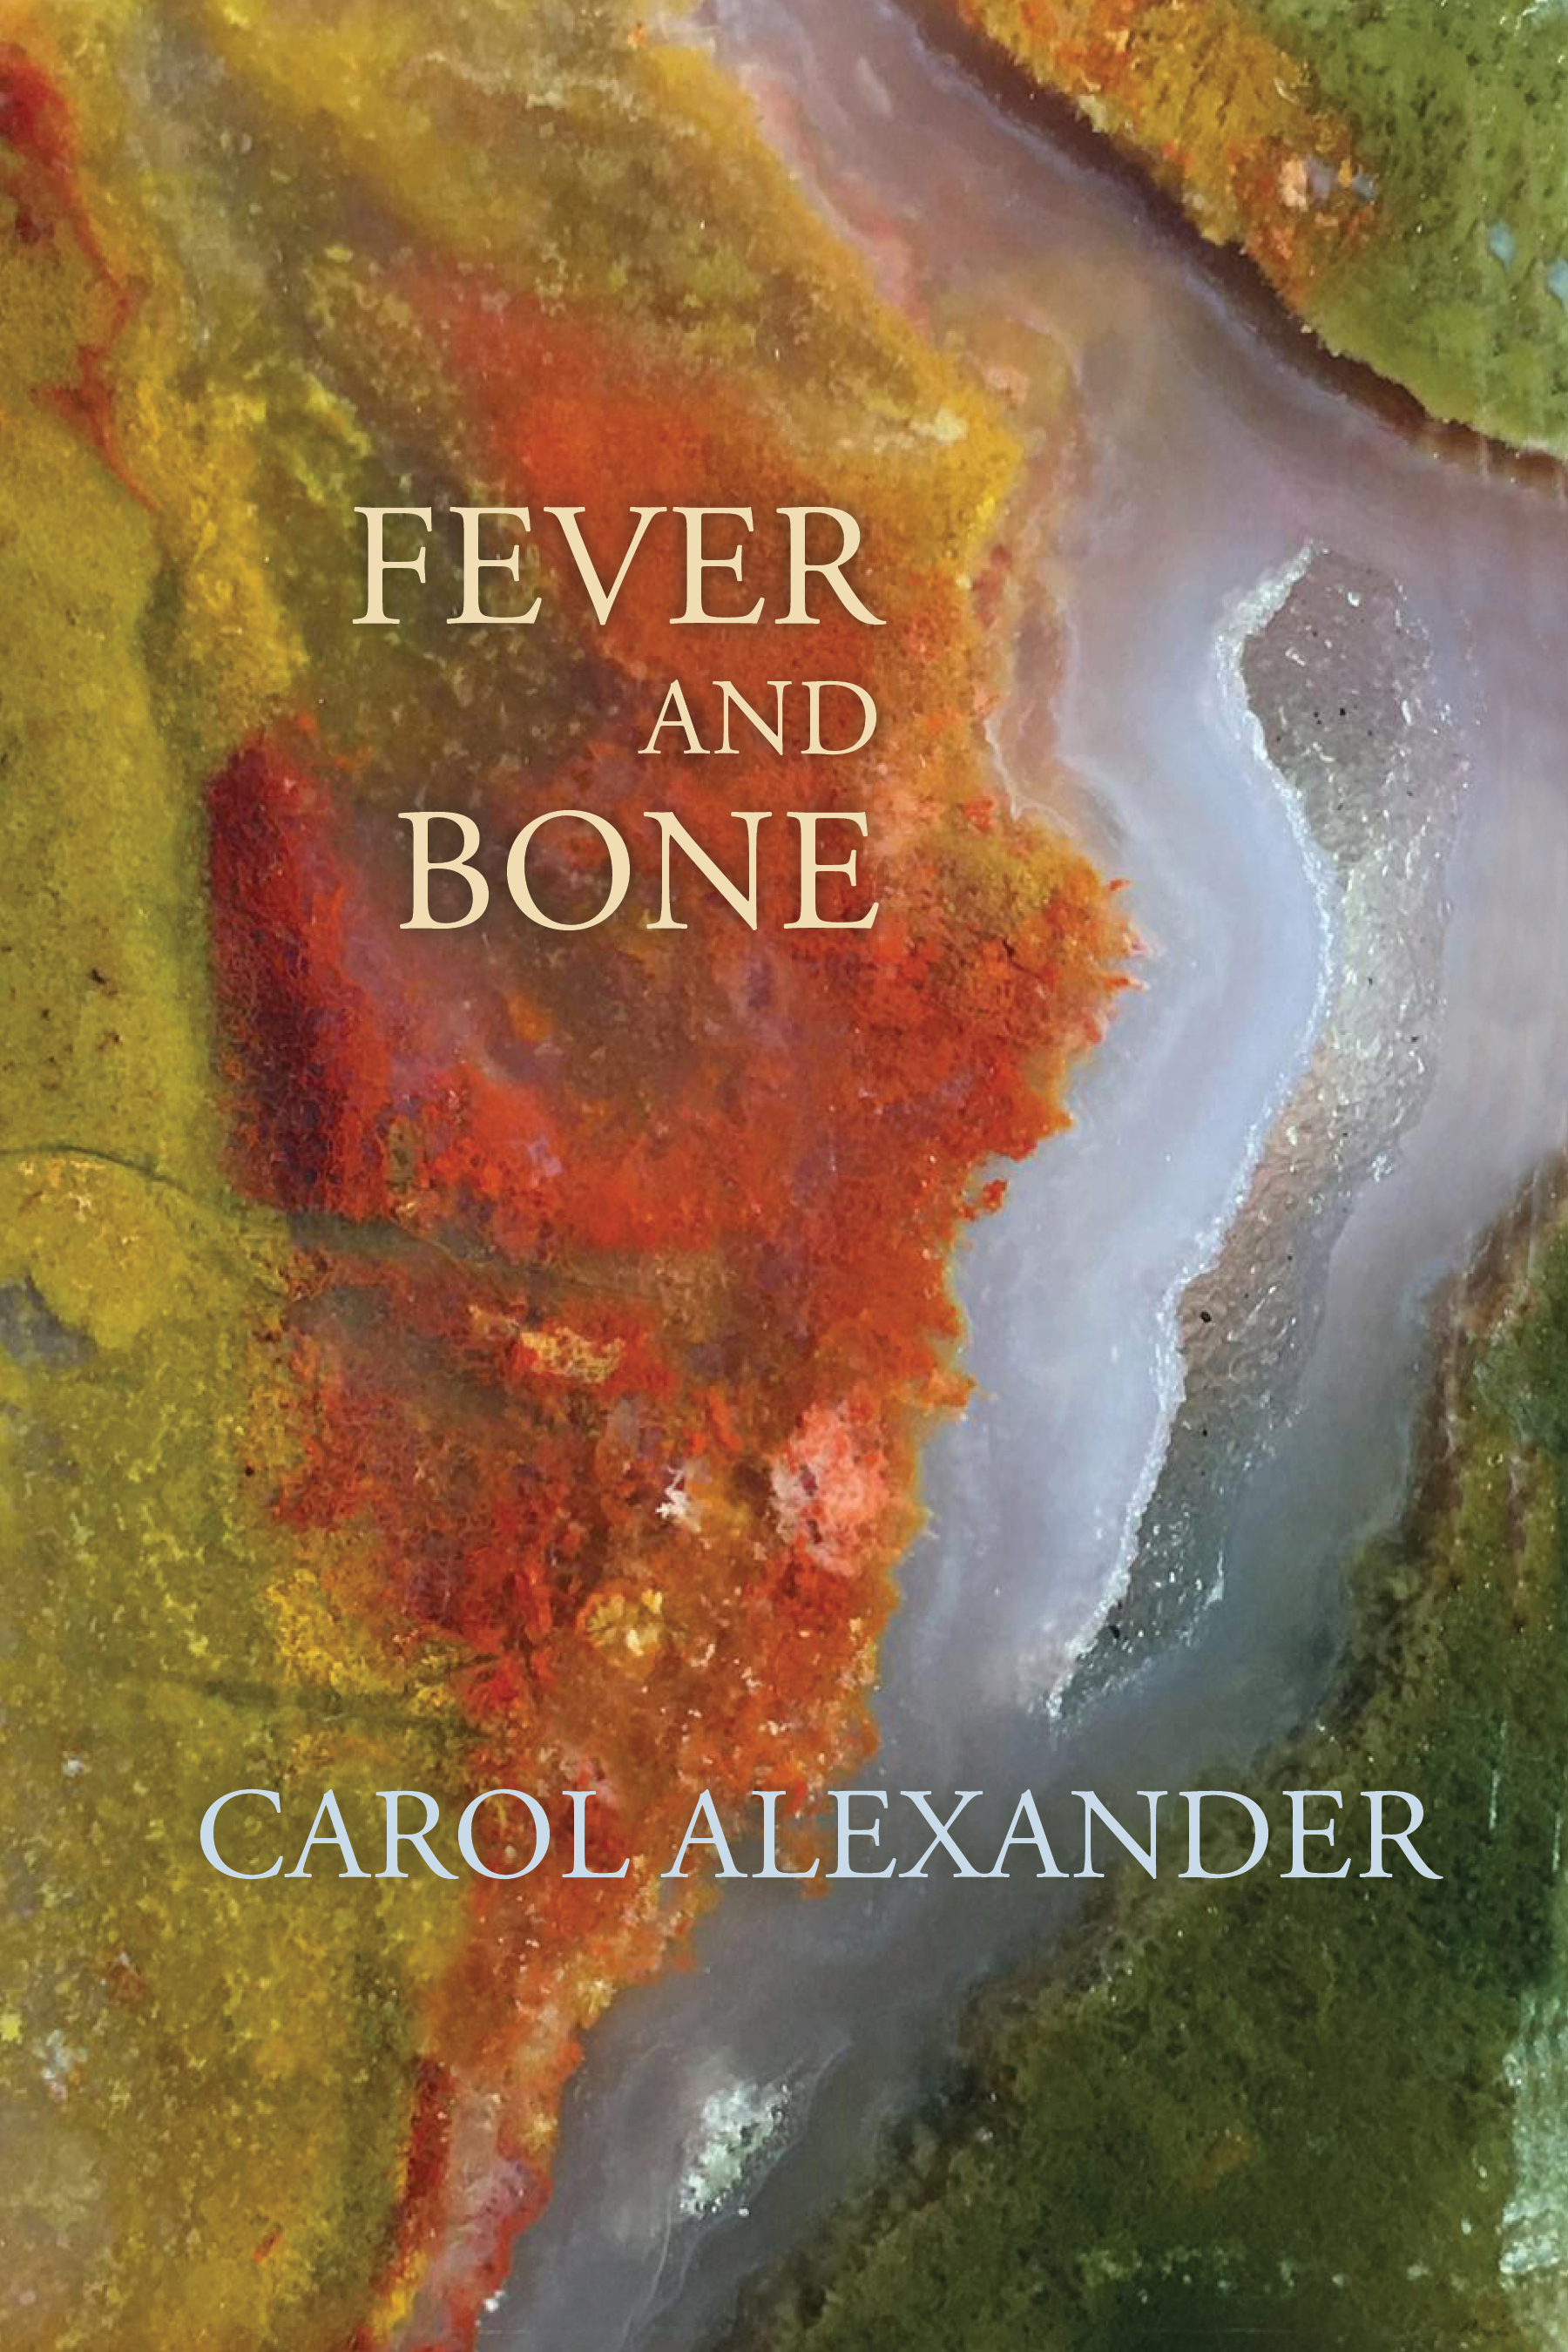 Fever and Bone